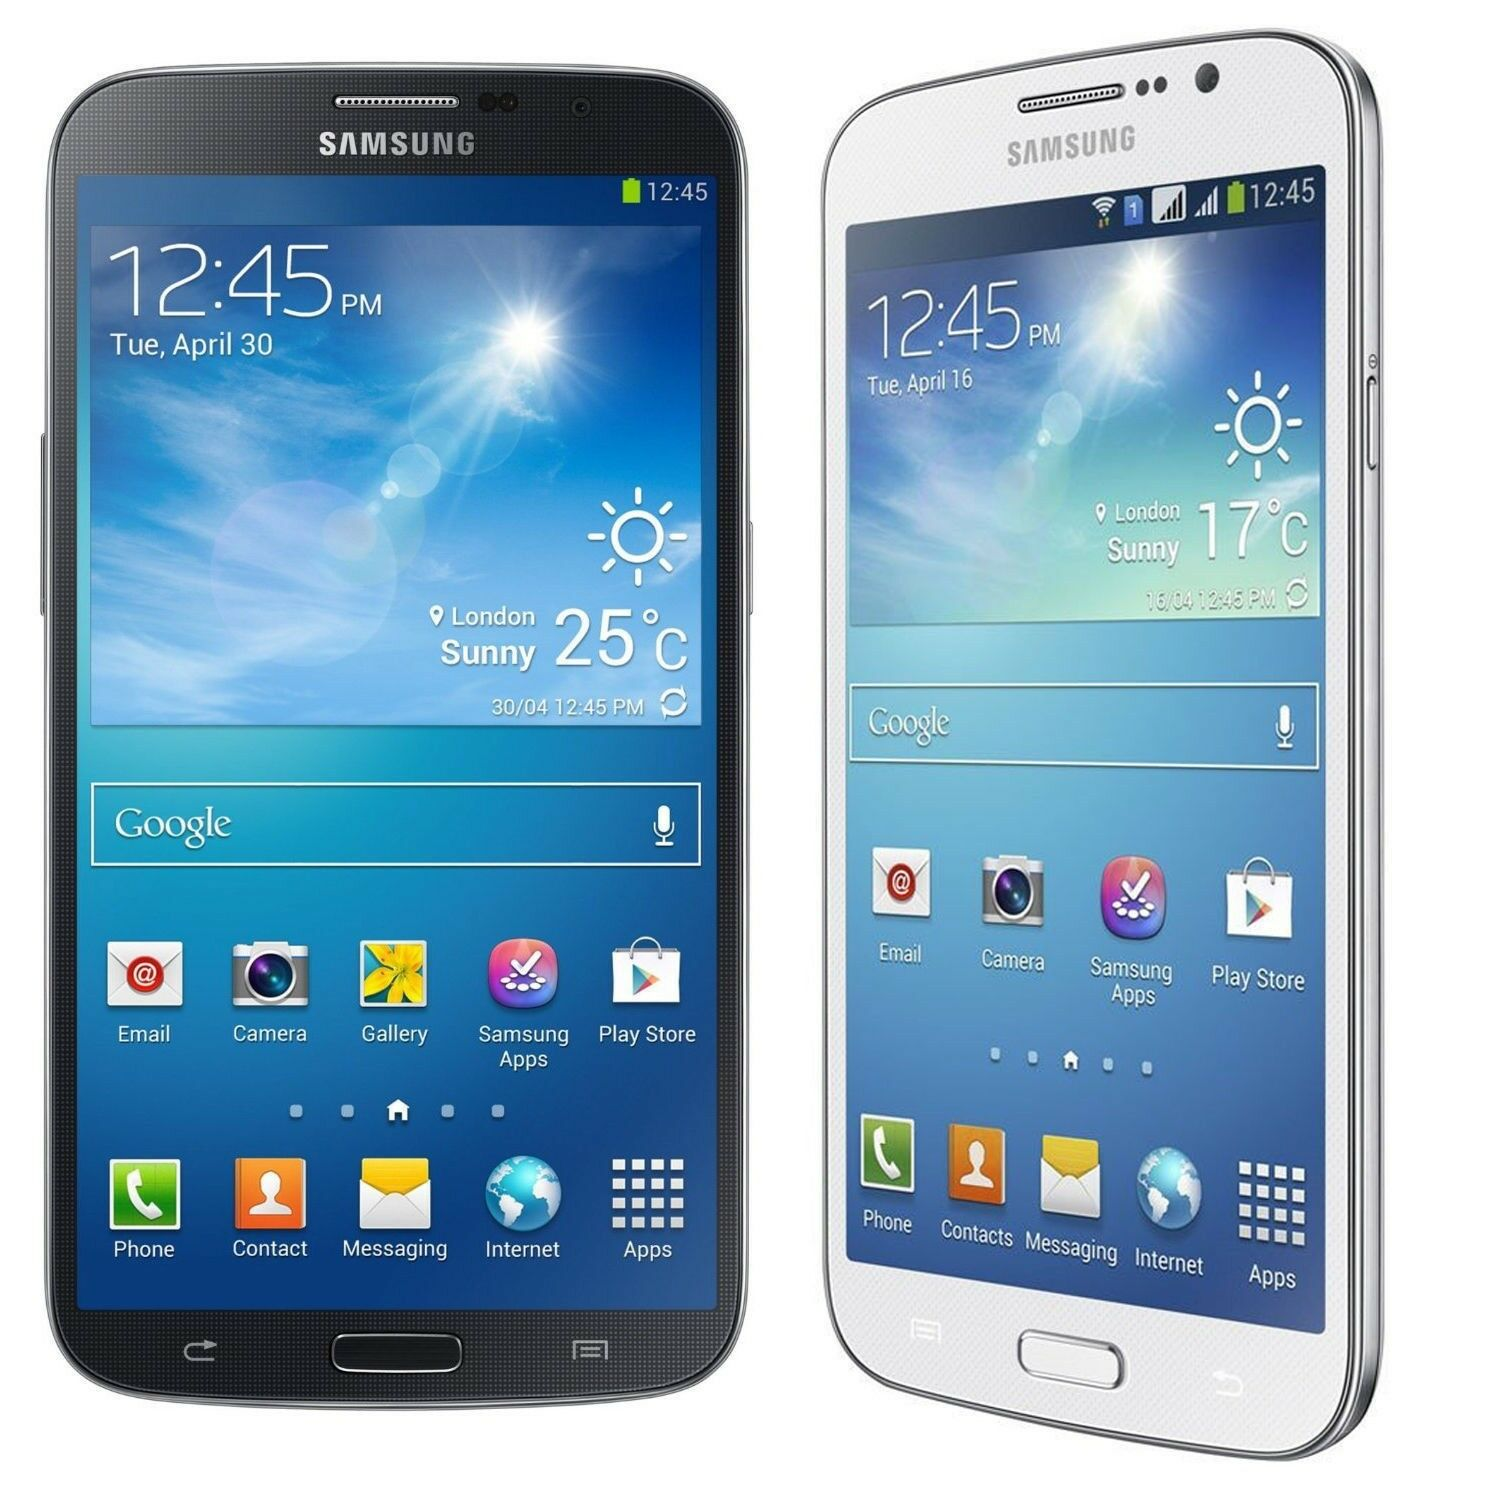 Android Phone - New in box Samsung Galaxy Mega I9152 Android  GSM Unlocked DUAL SIM Smart phone